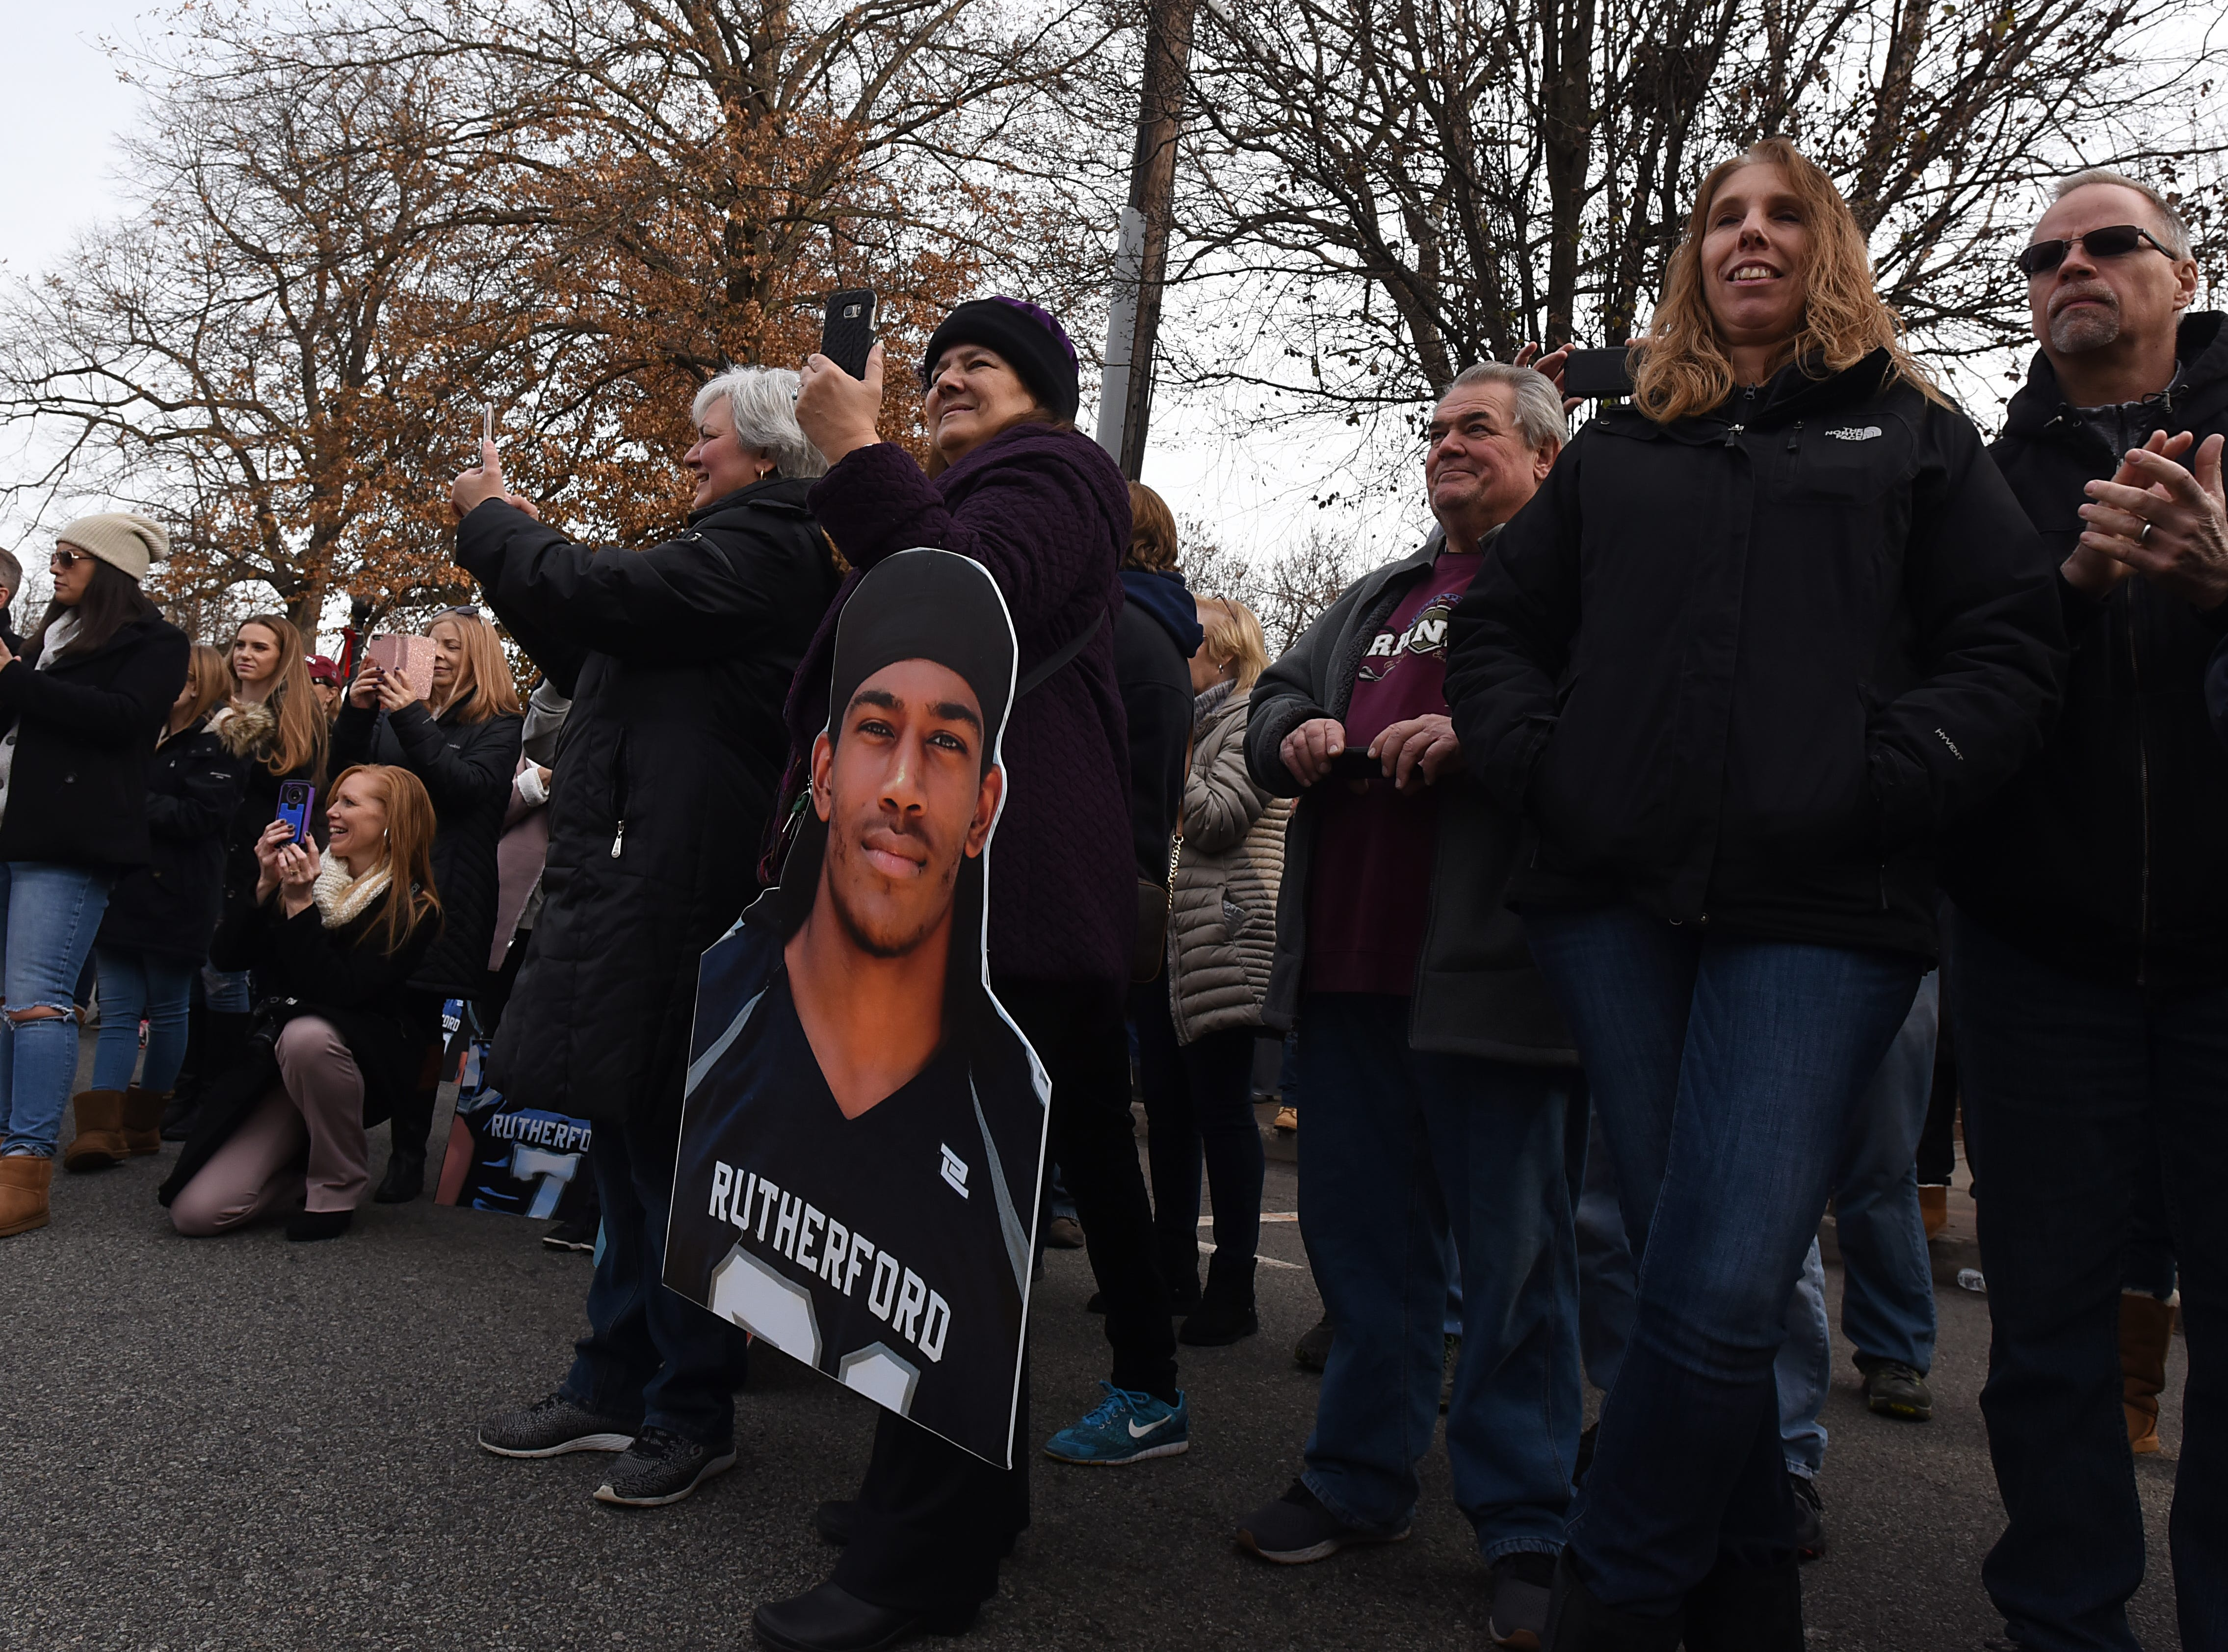 People cheer along the parade route at the Rutherford Football parade in Rutherford on Saturday December 1, 2018.